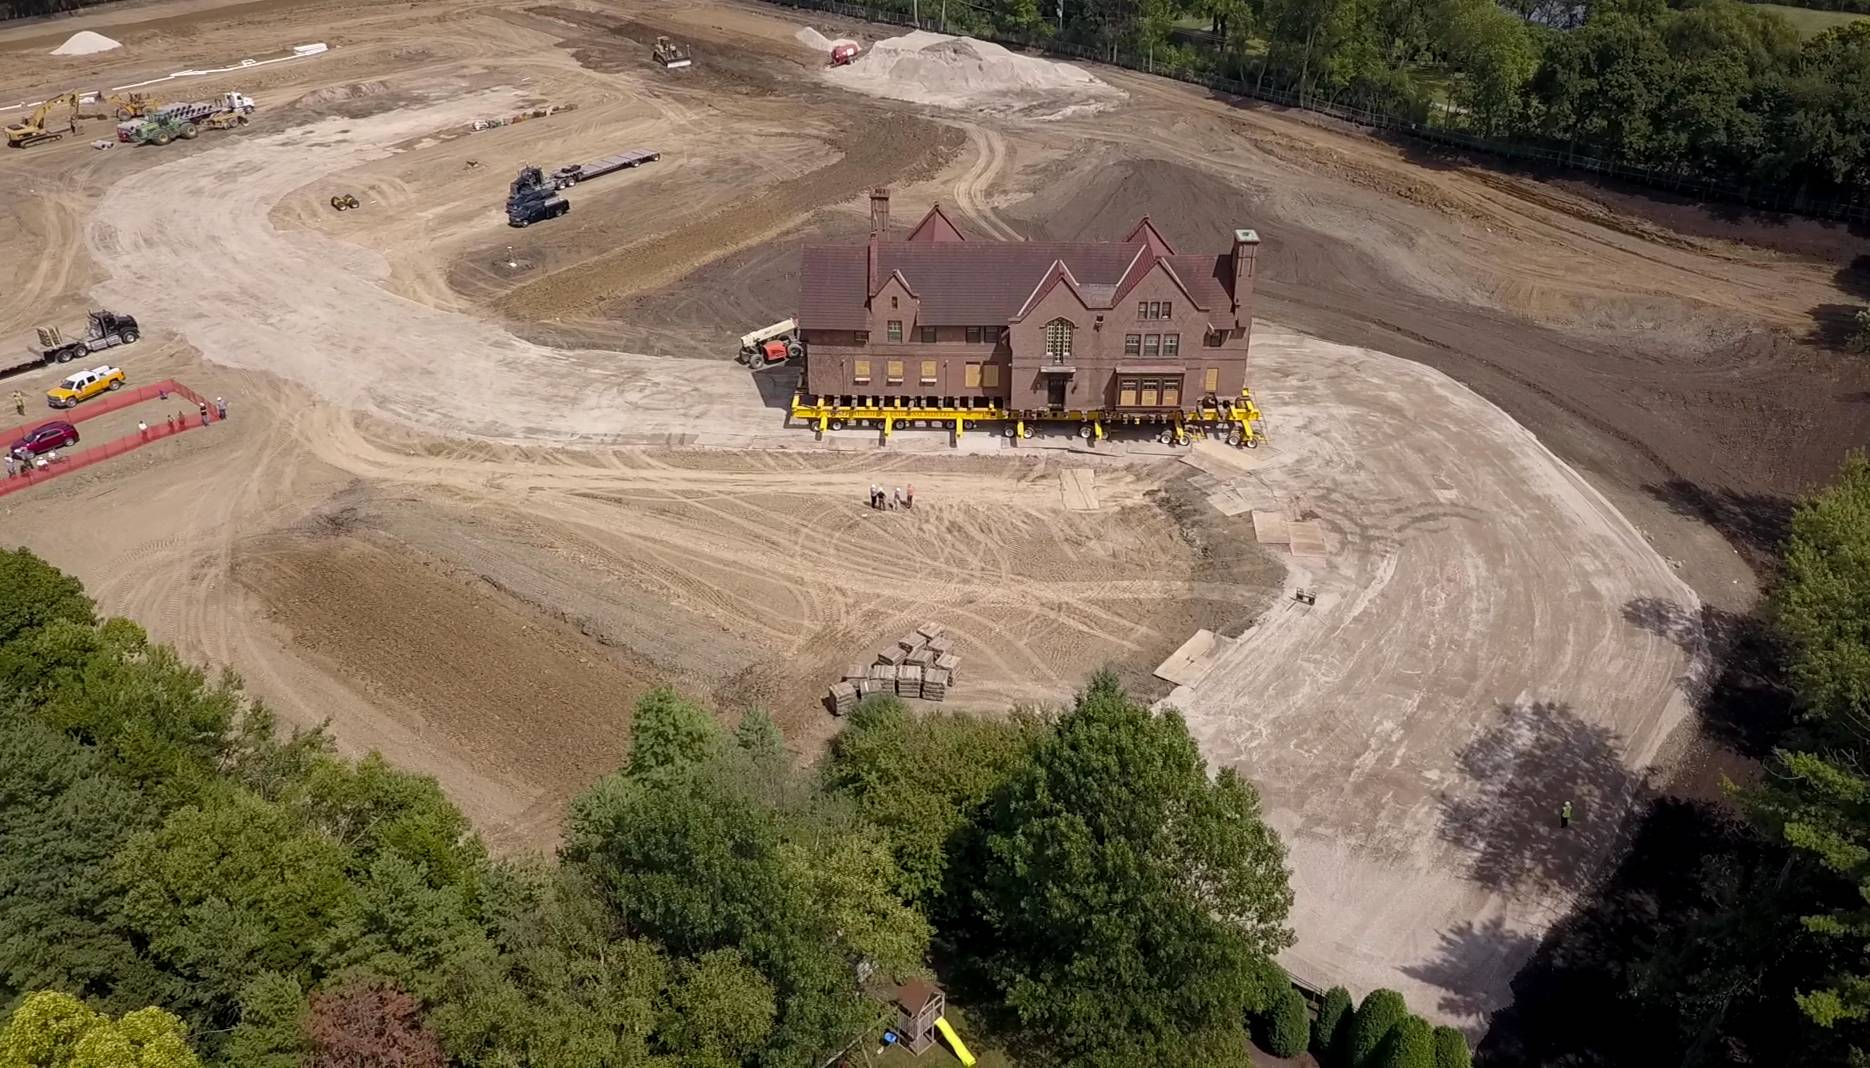 Mansion on the move in Wheaton -- at 3 mph